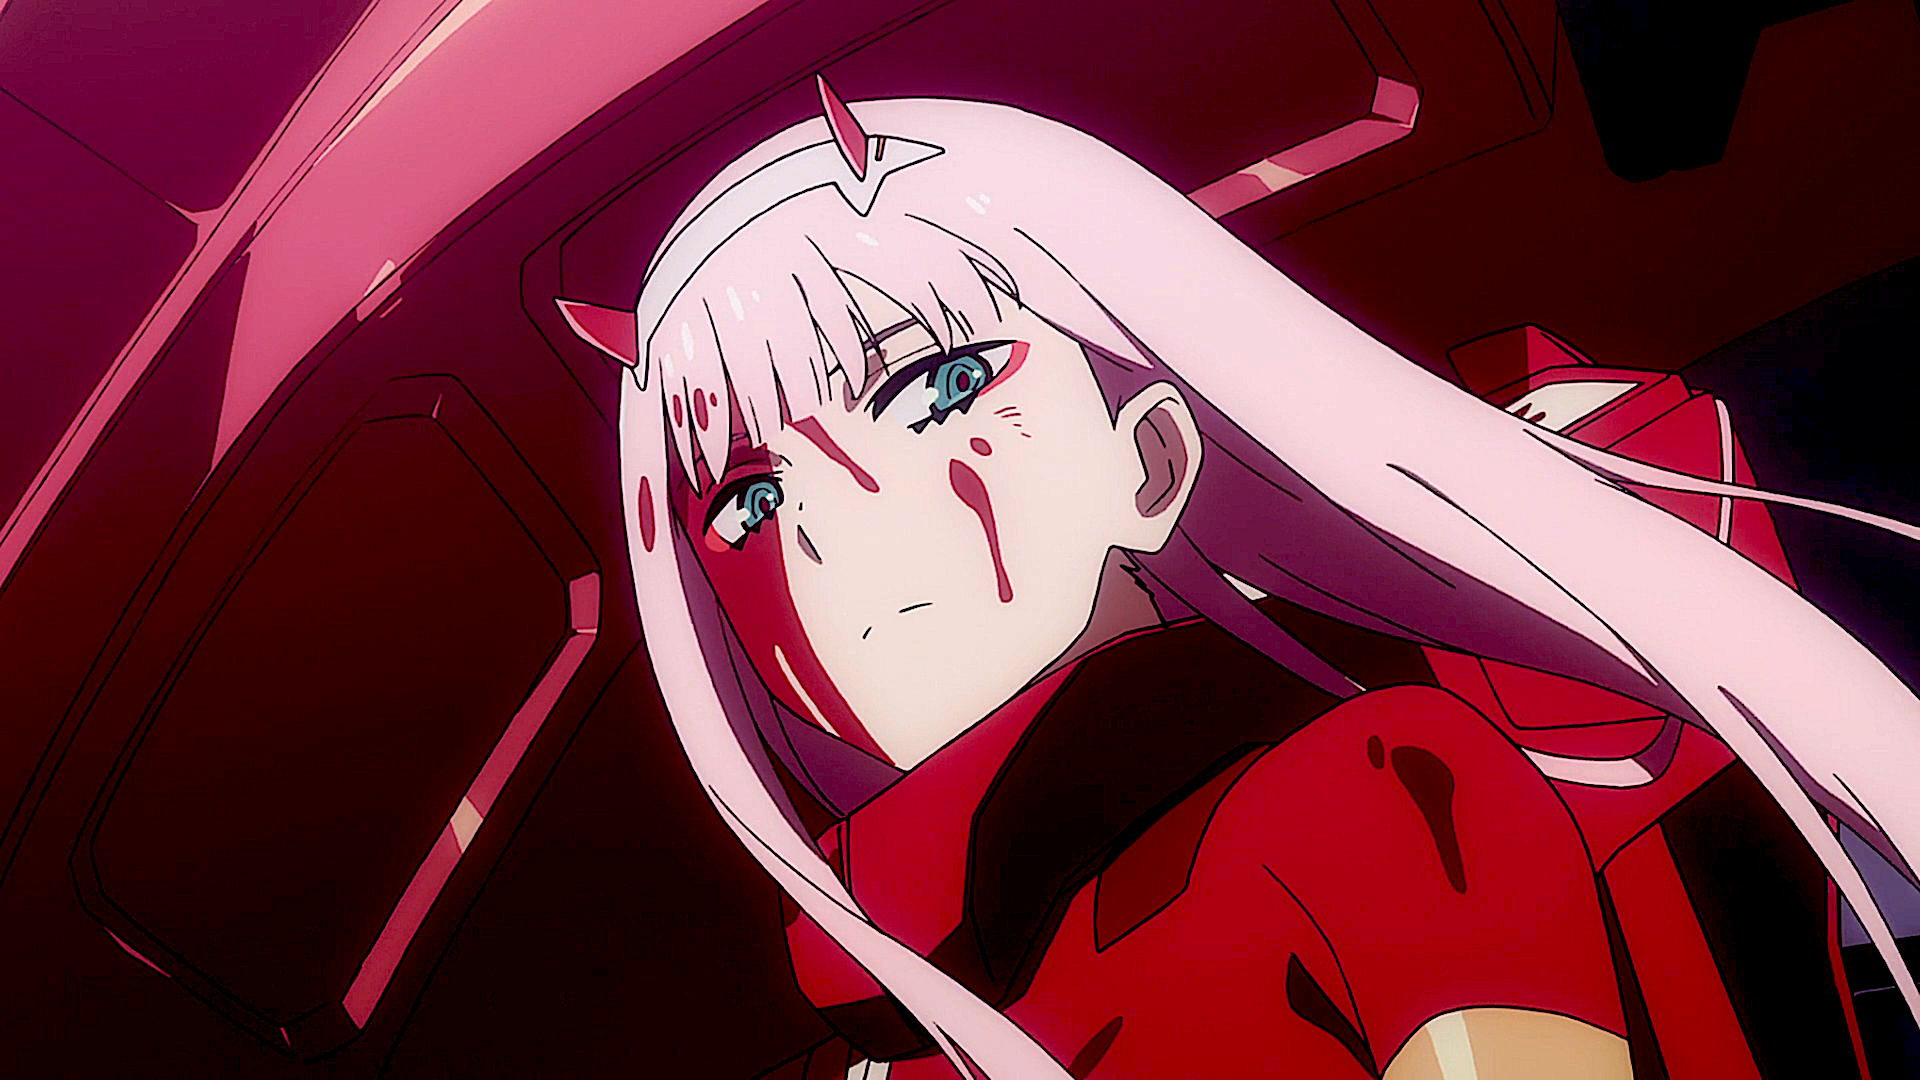 动漫 - Darling in the FranXX  Zero Two (Darling in the FranXX) Pink Hair Horns 红色 Green Eyes 动漫 壁纸